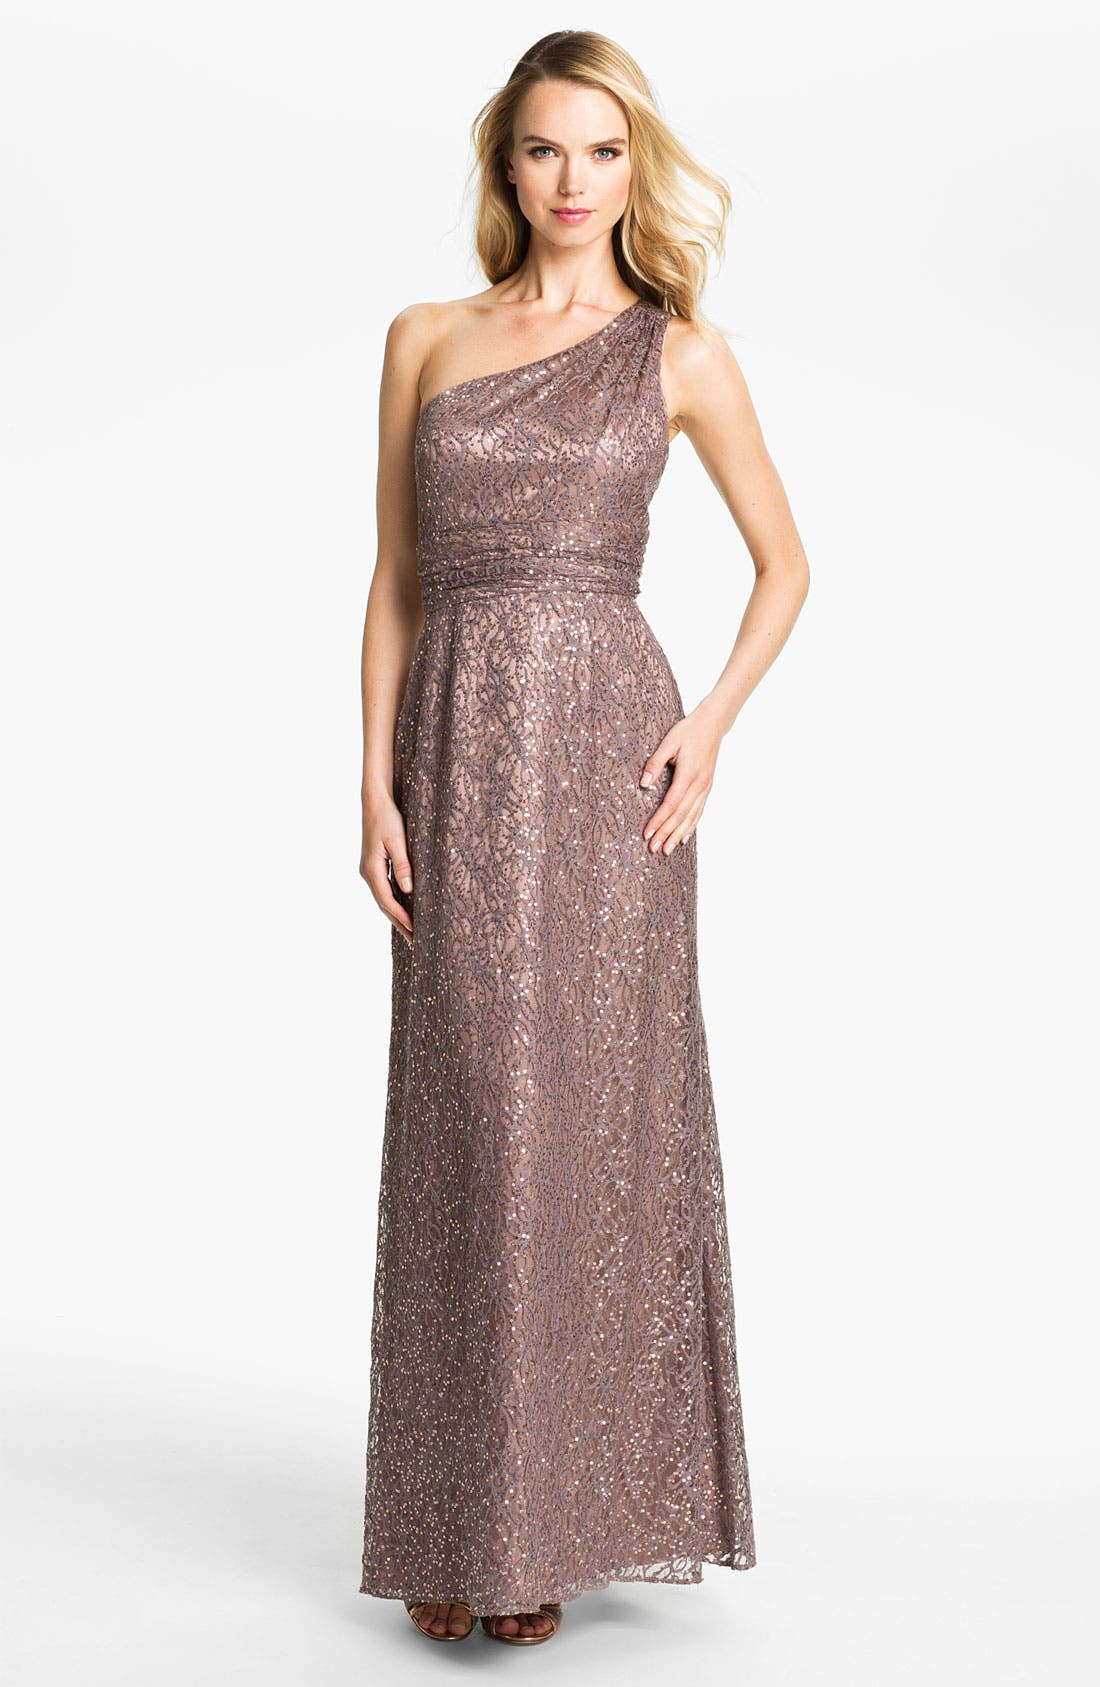 Main Image - Hailey by Adrianna Papell One Shoulder Sequin Lace Gown